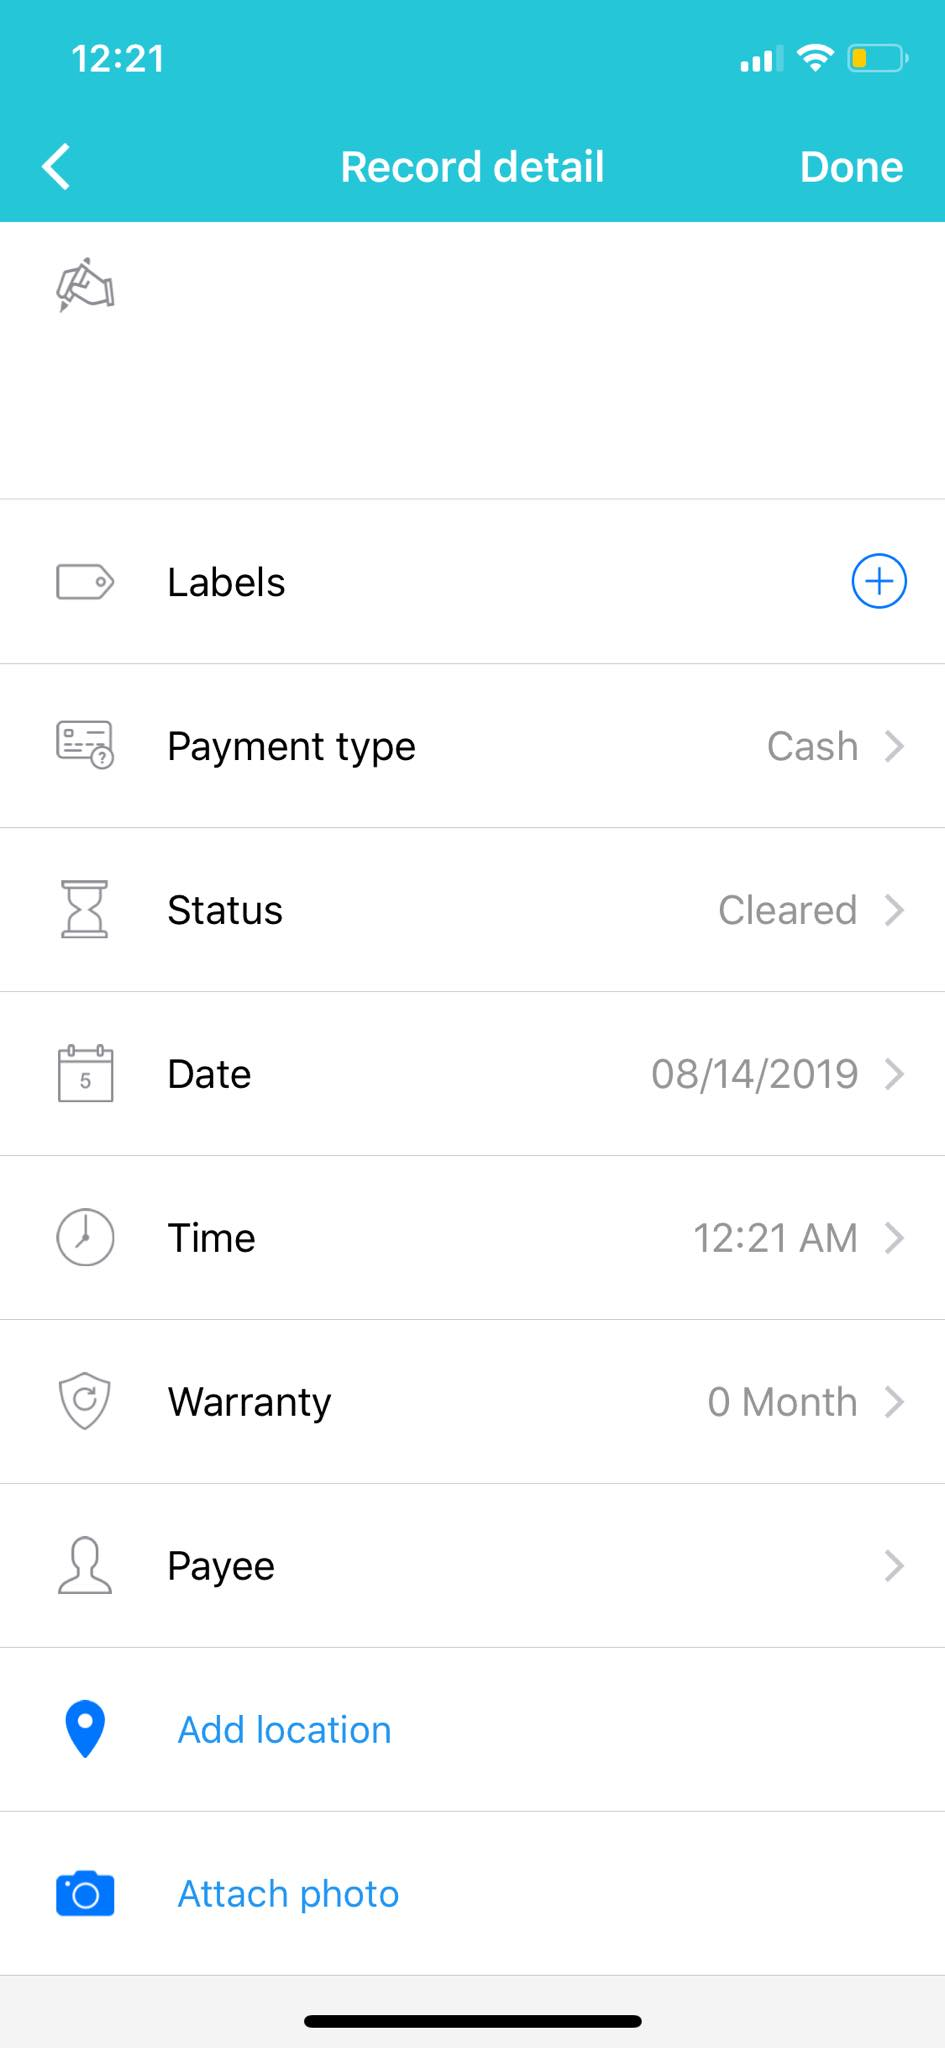 Record Detail on iOS by Wallet from UIGarage